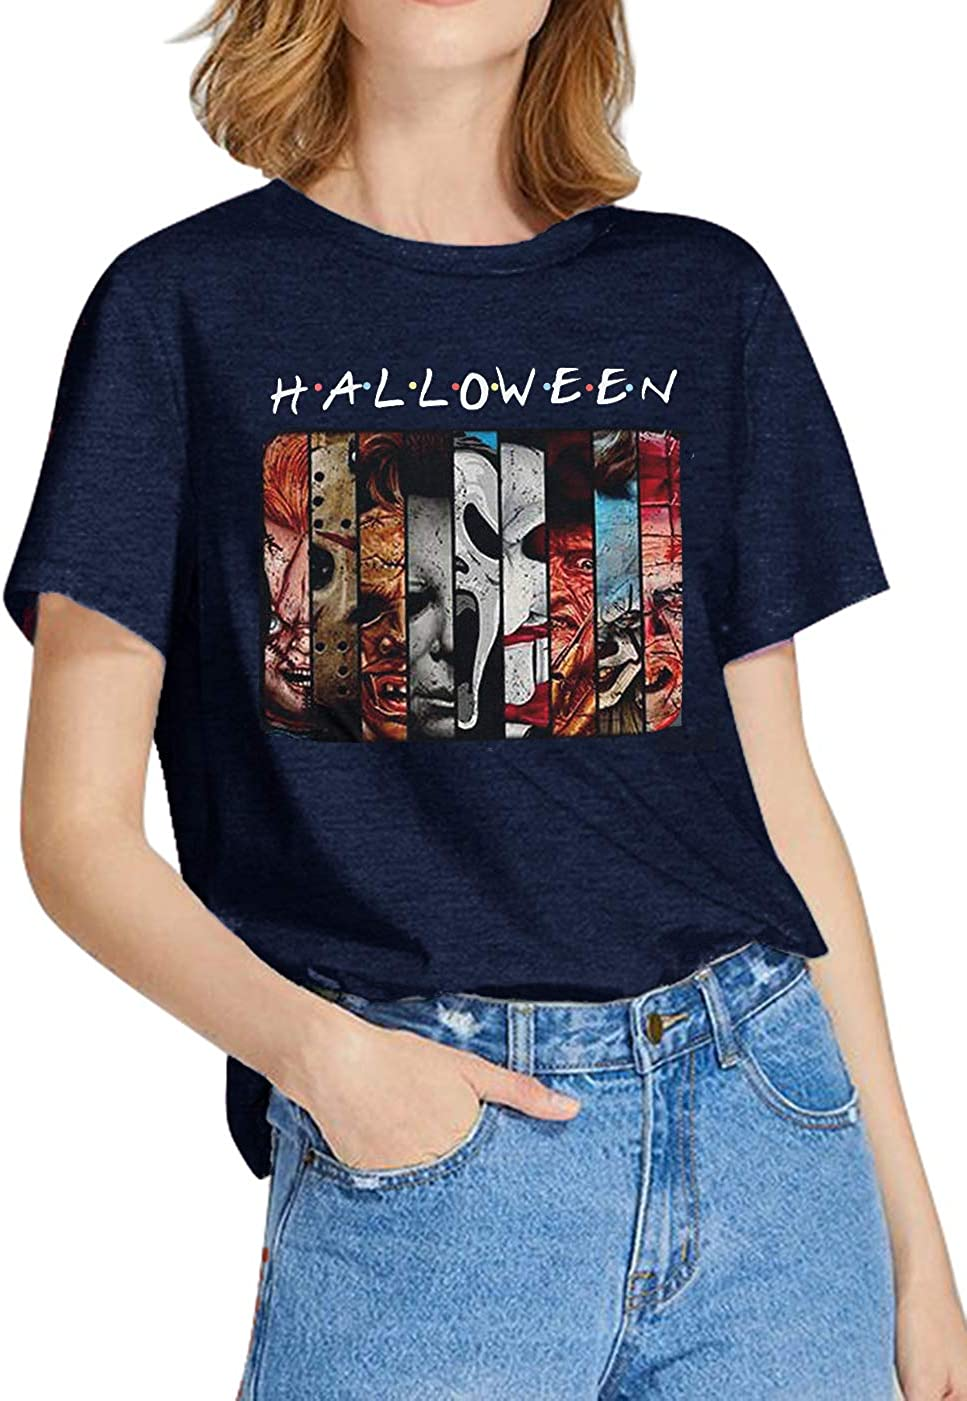 Friends Horror Movie Shirt Women Halloween Horror T-Shirt Novelty Characters Face Graphic Tees Short Sleeve Casual Top